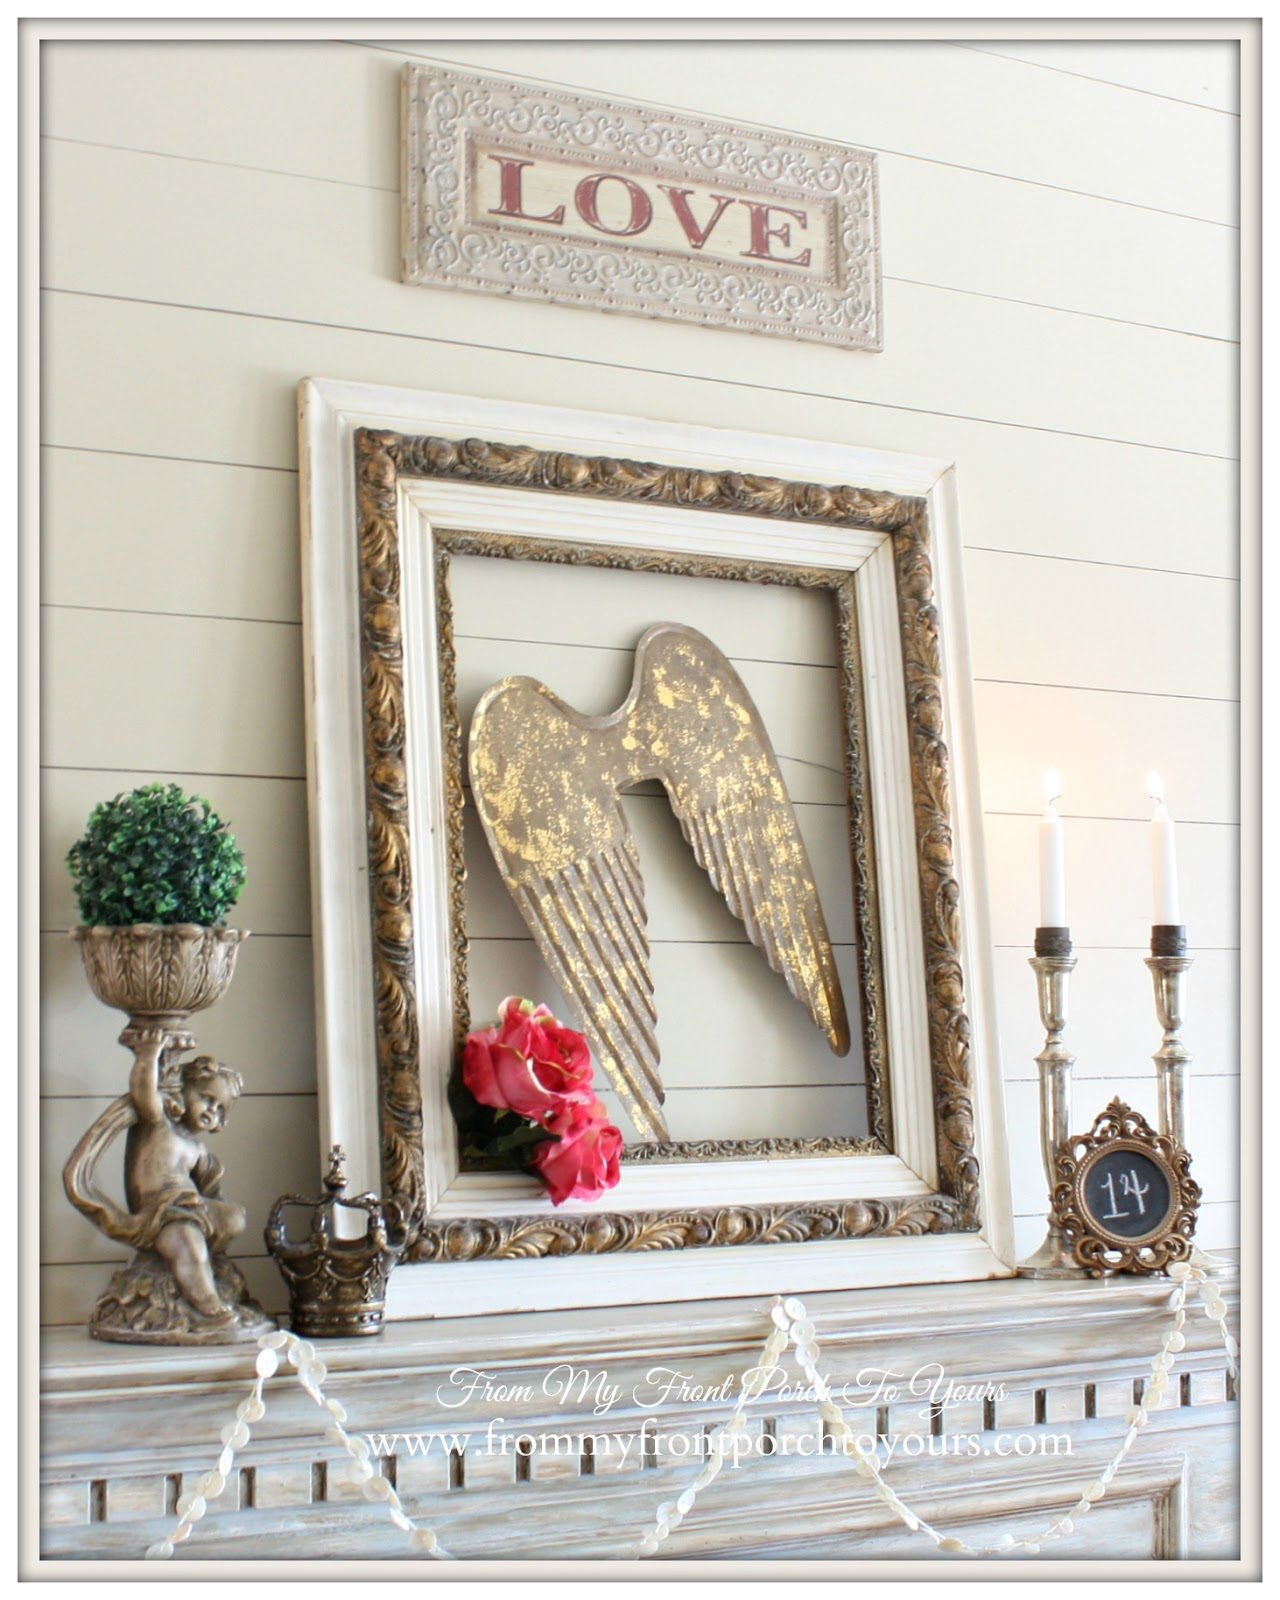 Vintage Romantic Valentines Mantel- From My Front Porch To Yours